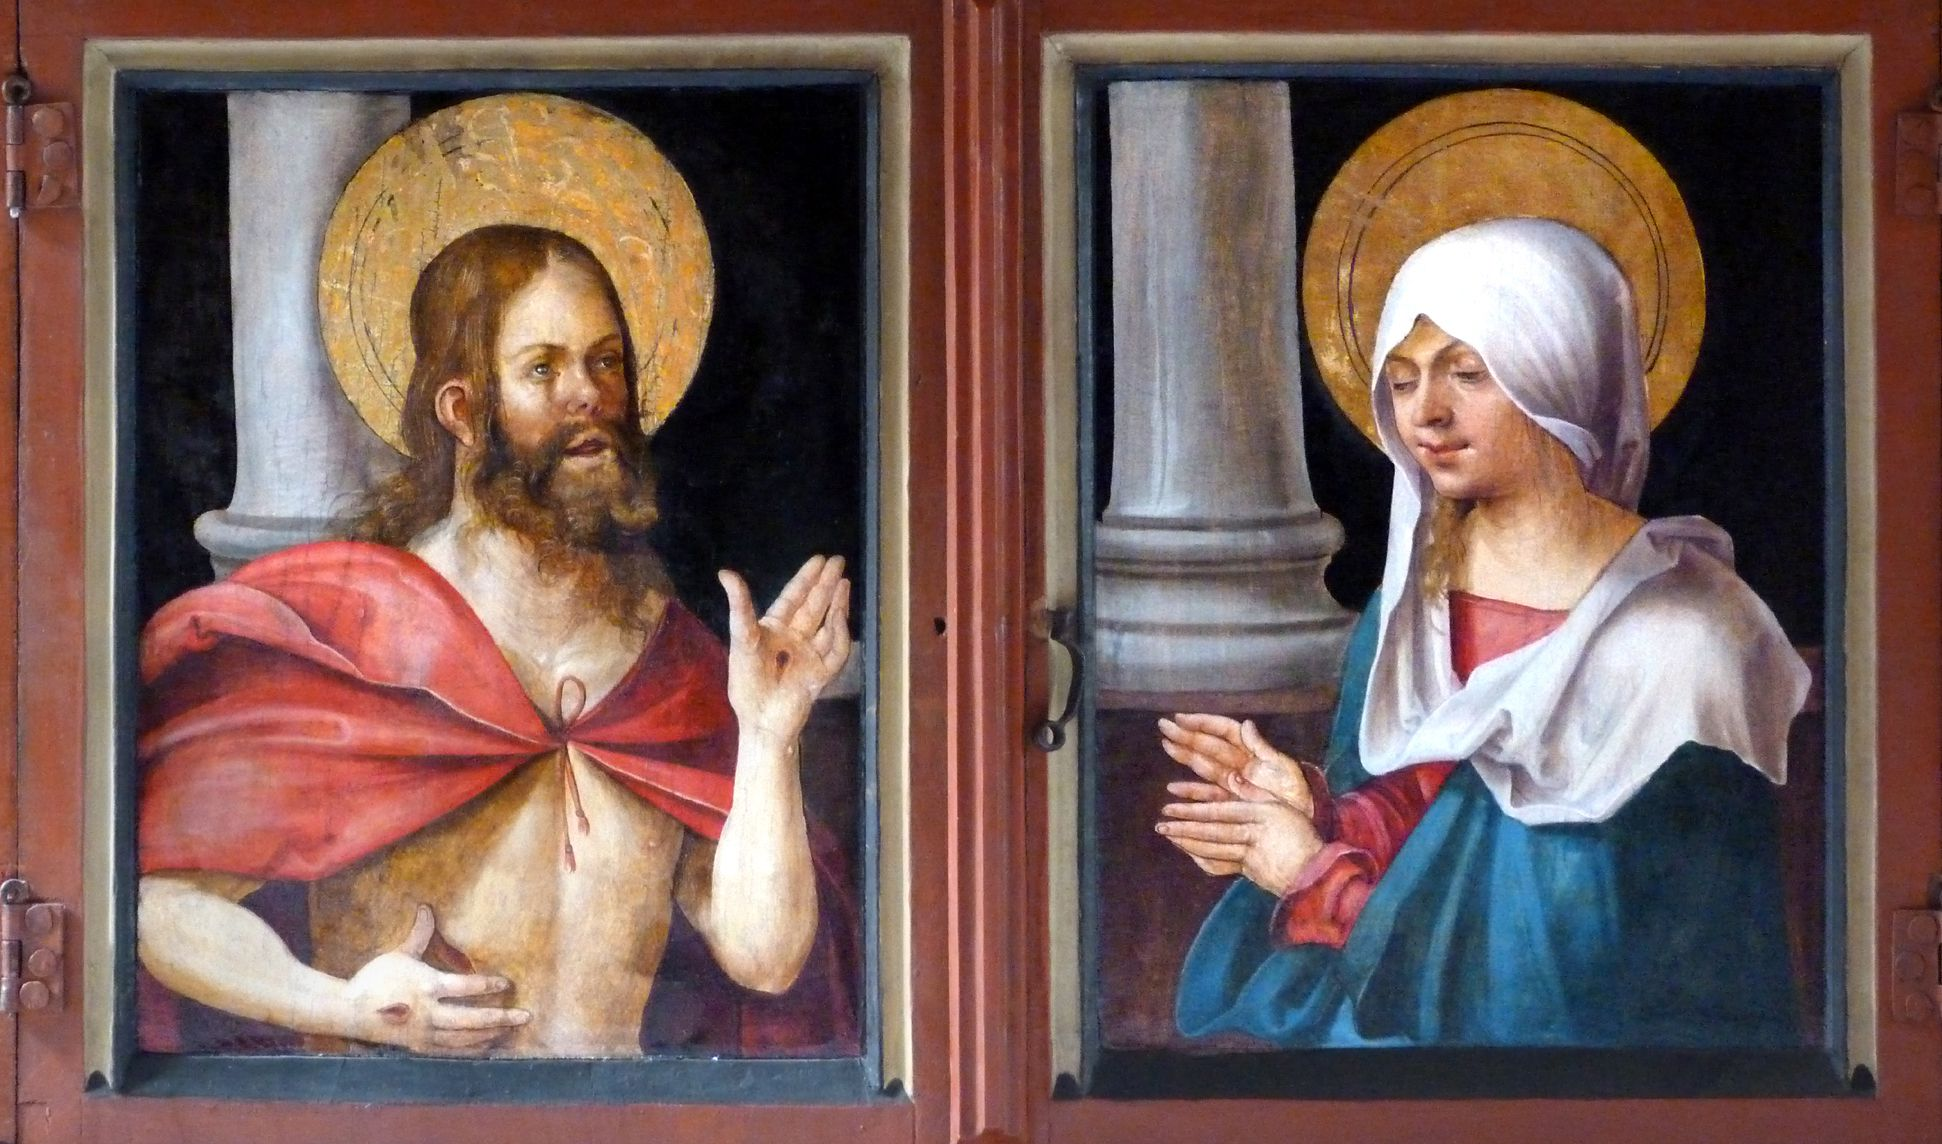 Wendelstein Three-Kings´ Altar Predella closed: Christ resurrected on the left, St. Mary on the right